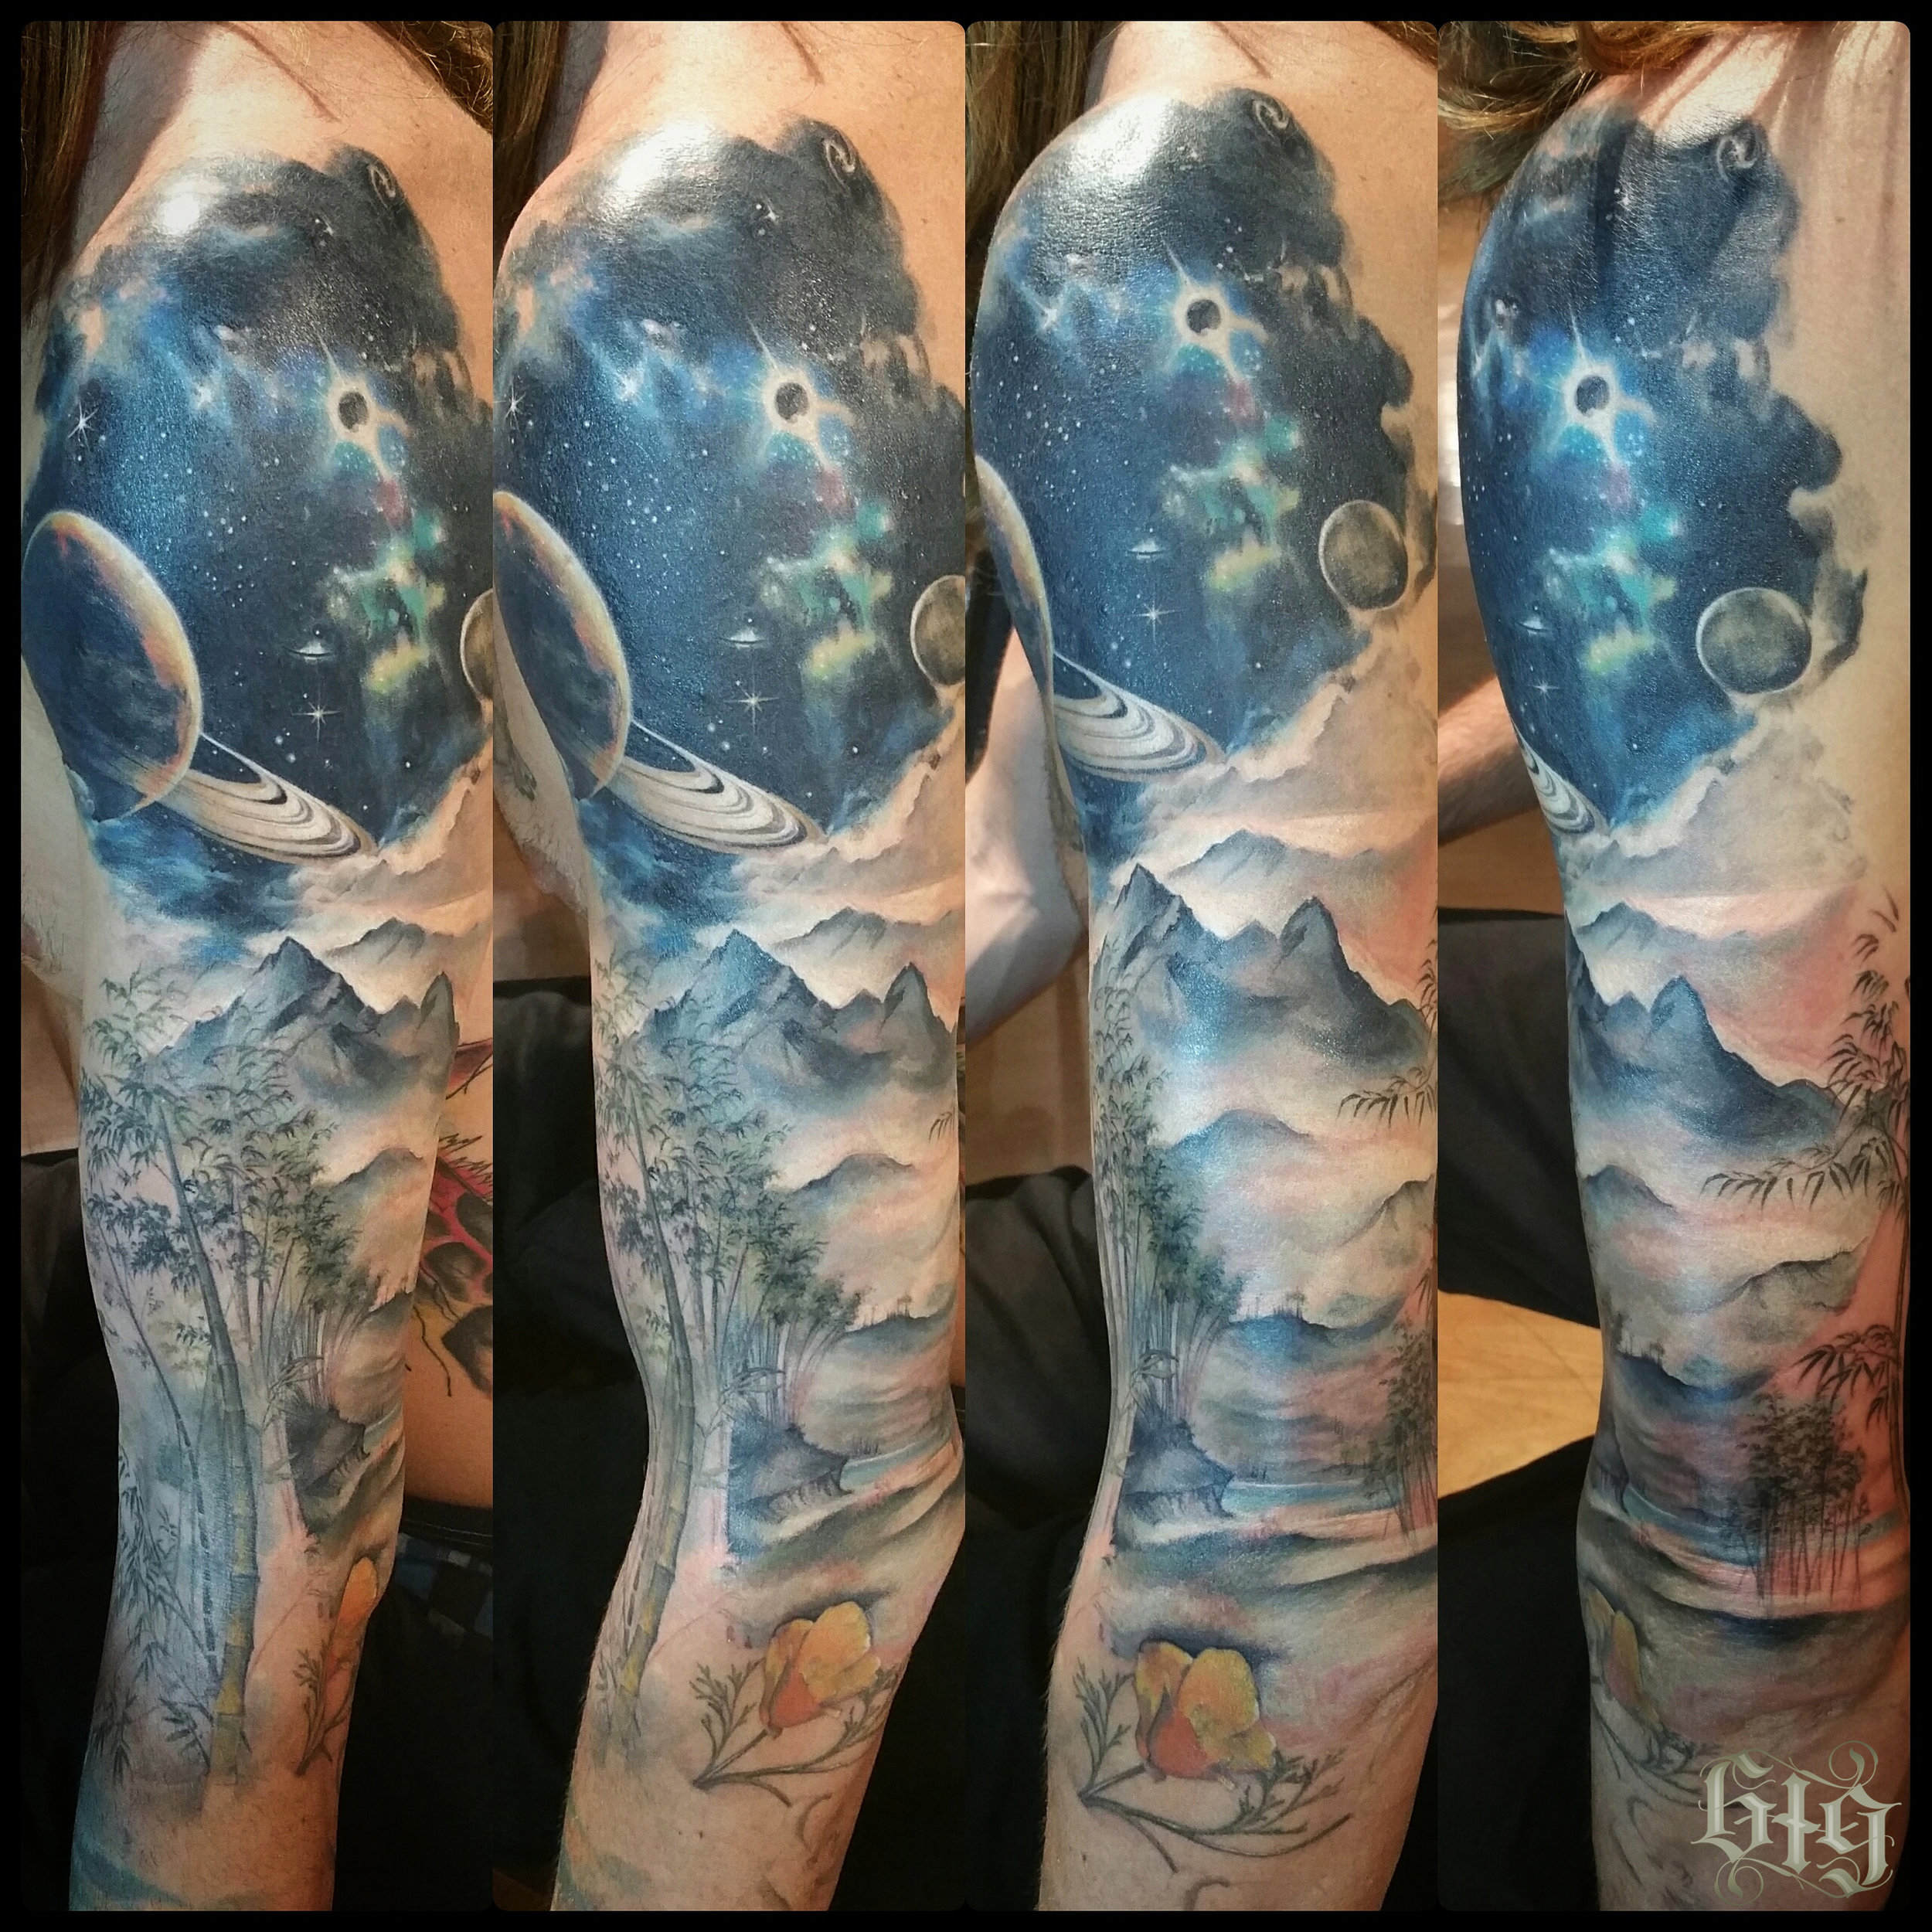 Nature scene with bamboo, poppy, river, mist, mountains, up to Saturn and its rings, an eclipsing sun and milky way stars. Color fine detail tattoo full sleeve.